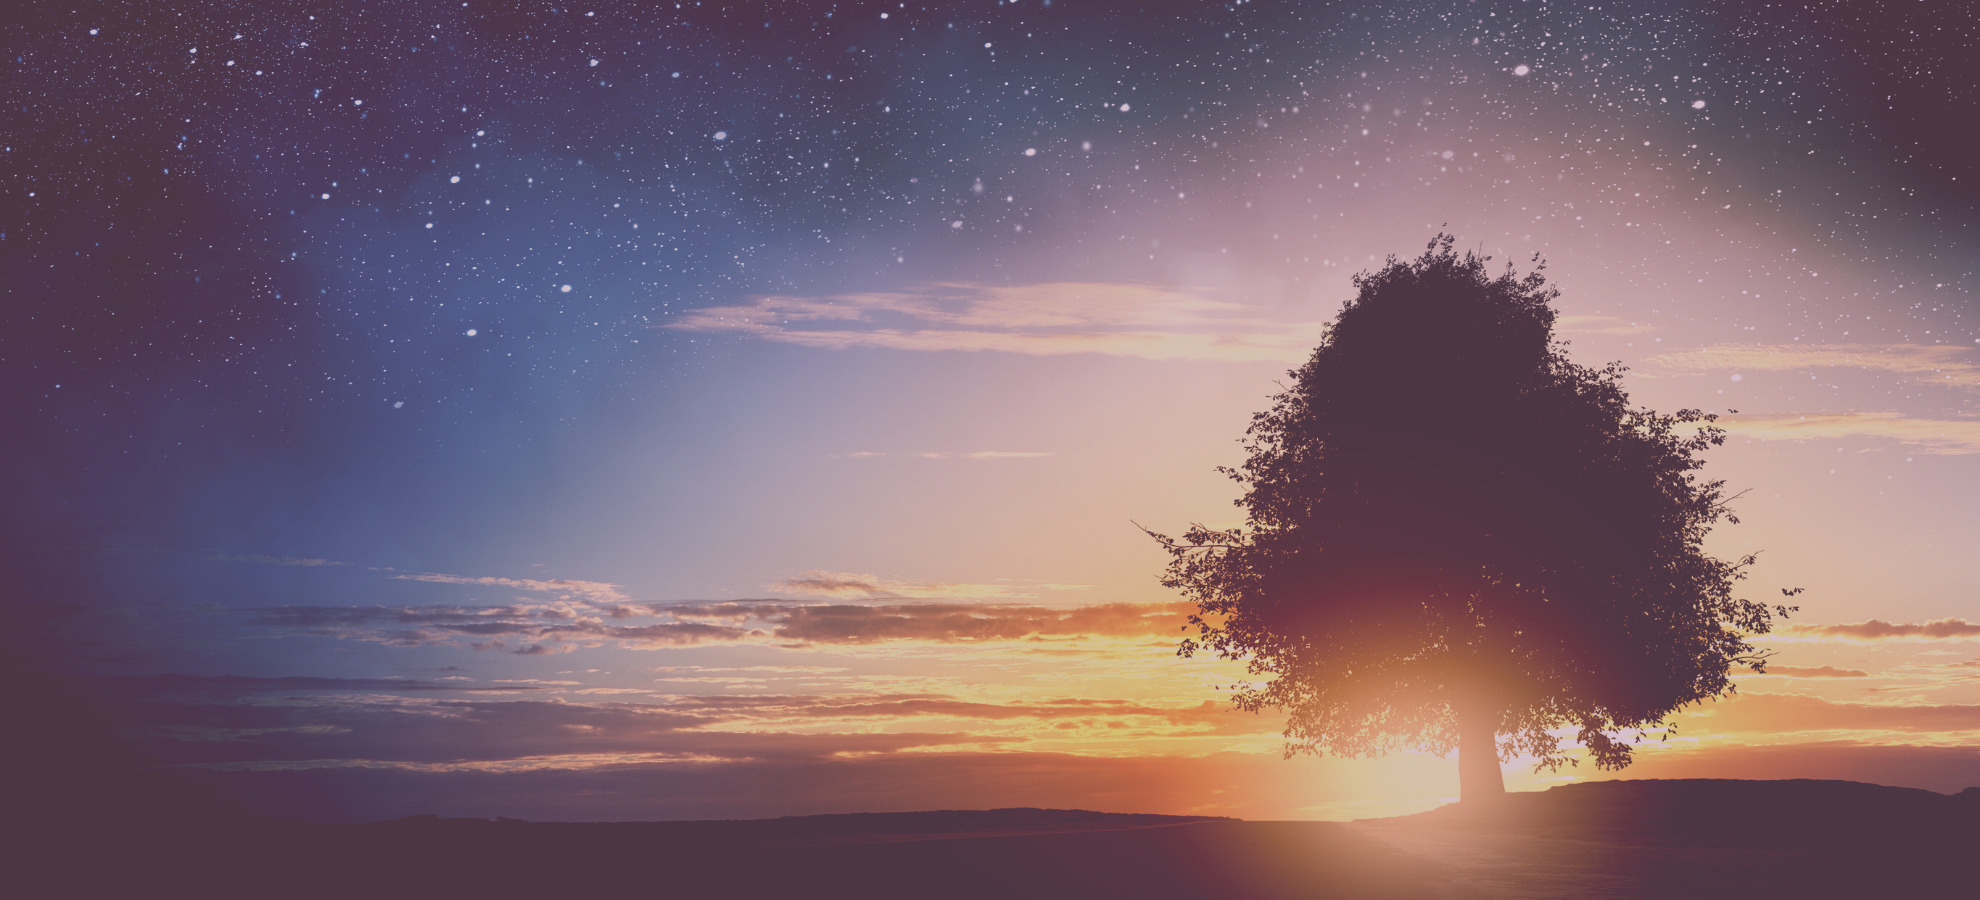 Starry Sky and Tree Silhouette